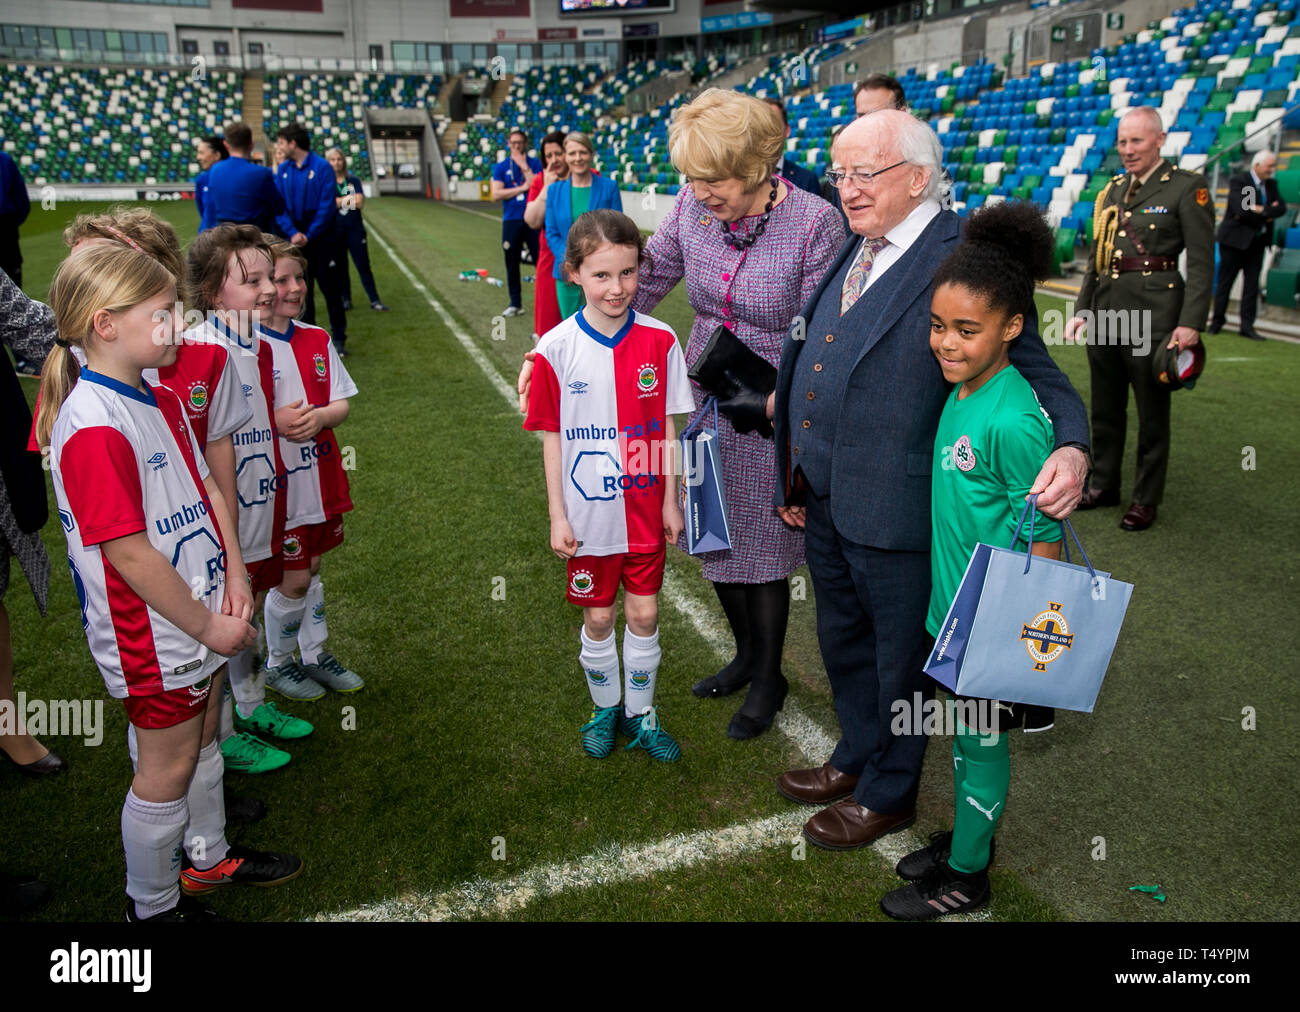 Irish President Michael D Higgins and his wife Sabina Coyne at pitch side in the National Stadium at Windsor Park, Belfast, meeting players from the Cliftonville and Linfield U9 girls' teams. Stock Photo